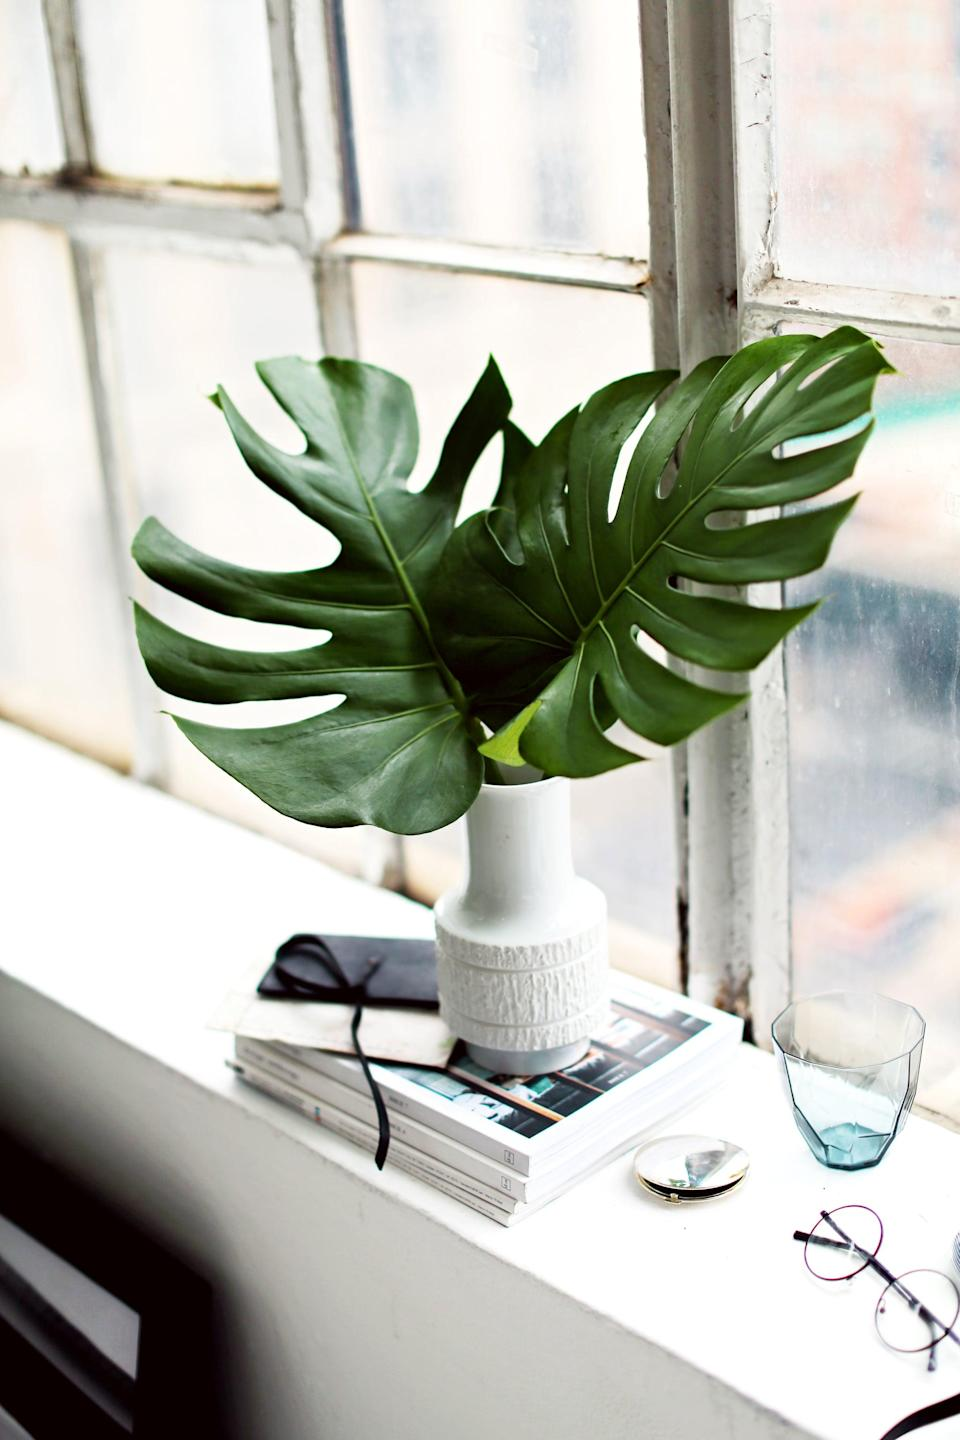 """<p>Next time you're dusting your house, don't forget to give those plants a good dusting too! Your houseplants don't just need their leaves to turn sunlight into energy - they actually """"breathe"""" through them as well. If their leaves become too dusty, they're unable to absorb the oxygen, turning your once-healthy plant into a sickly one. Make sure to keep the leaves clear of dust as often as possible - and a light mist of water isn't a bad idea either!</p>"""